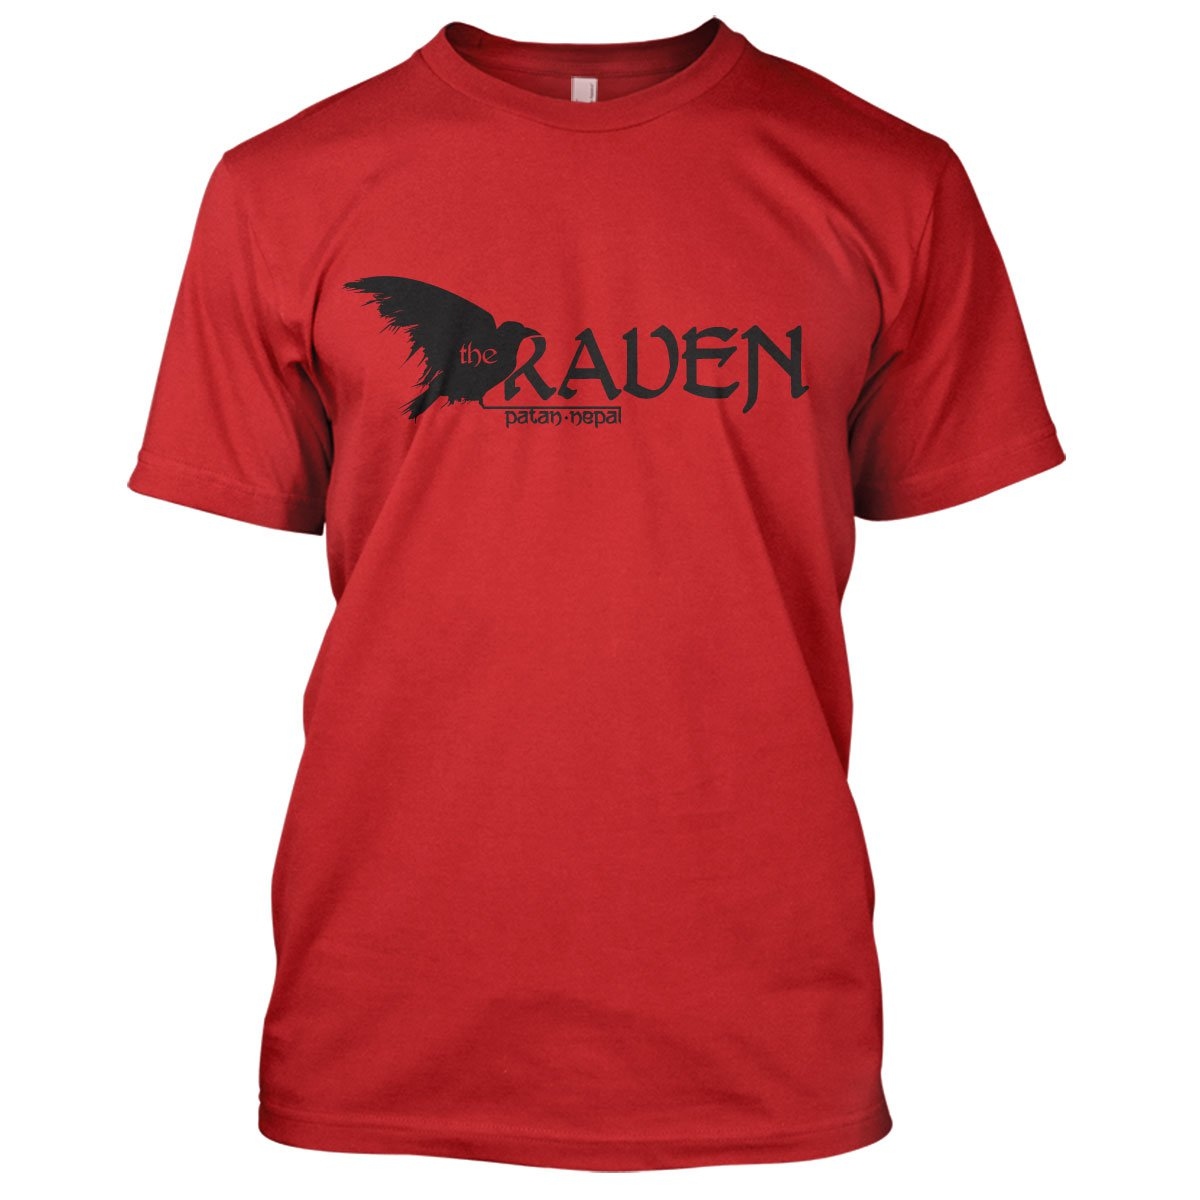 Indiana Jones: The Raven Mens Movie T-Shirt Large Red